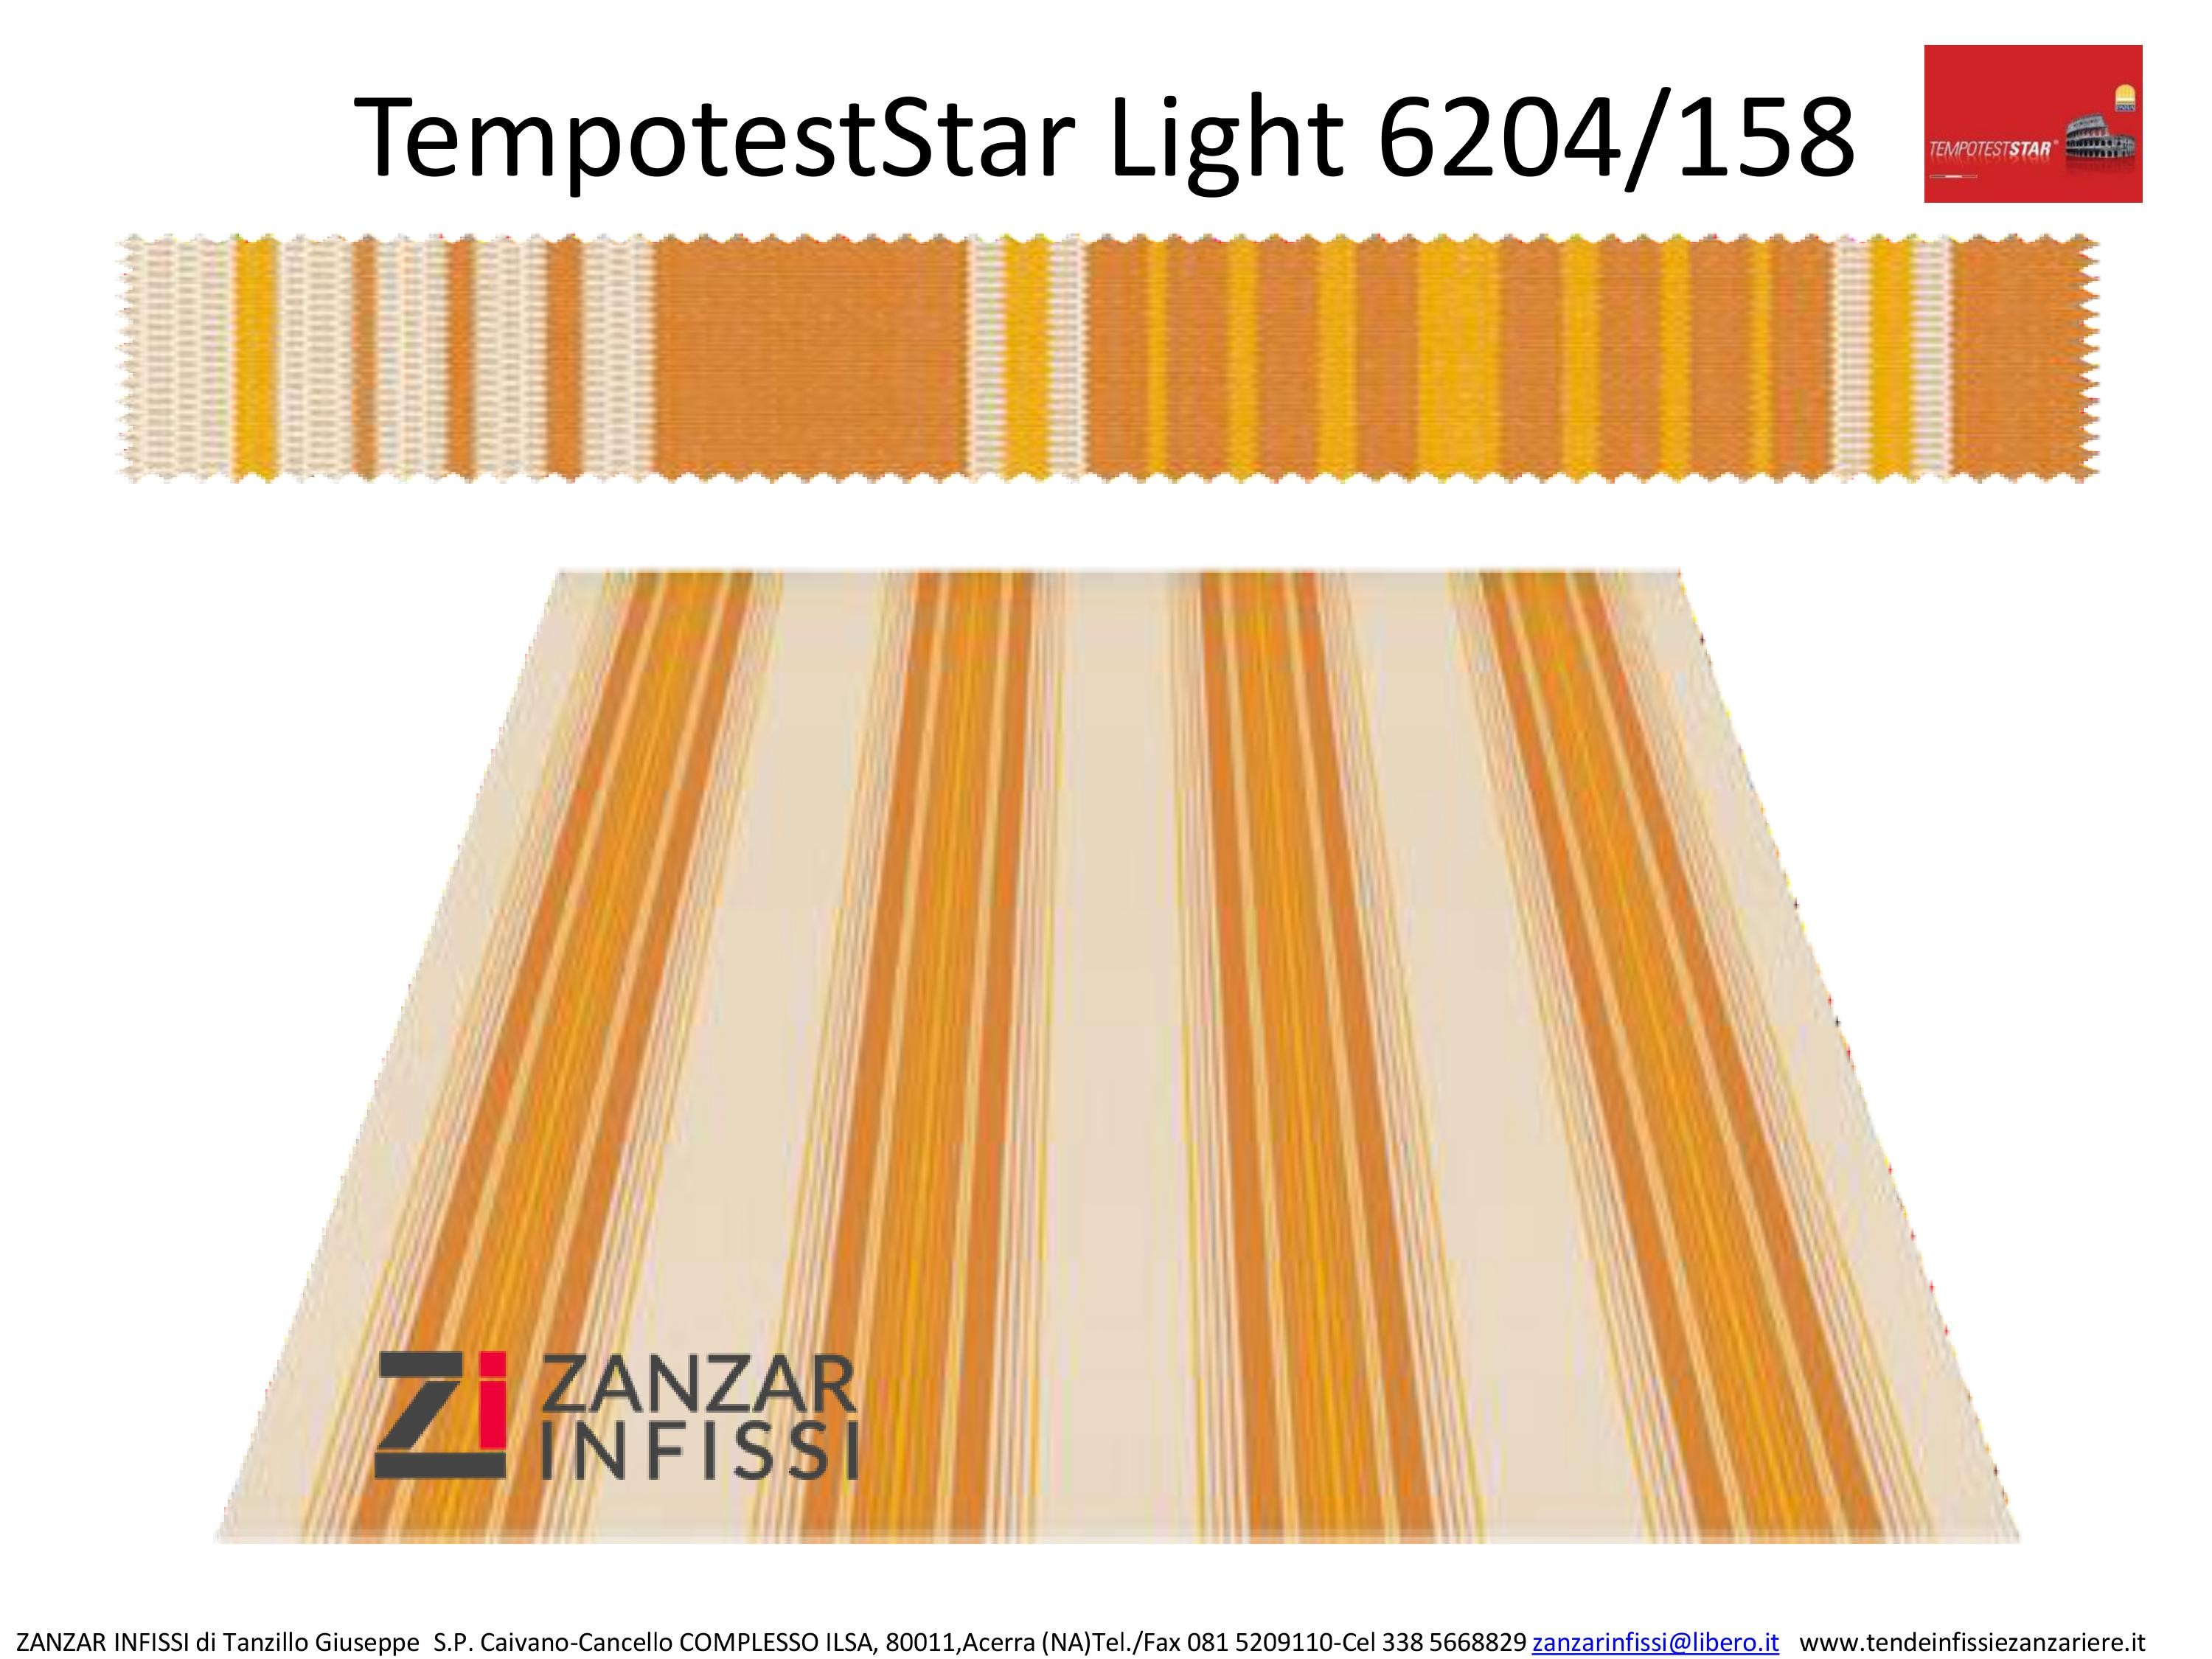 Tempotest star light 6204/158